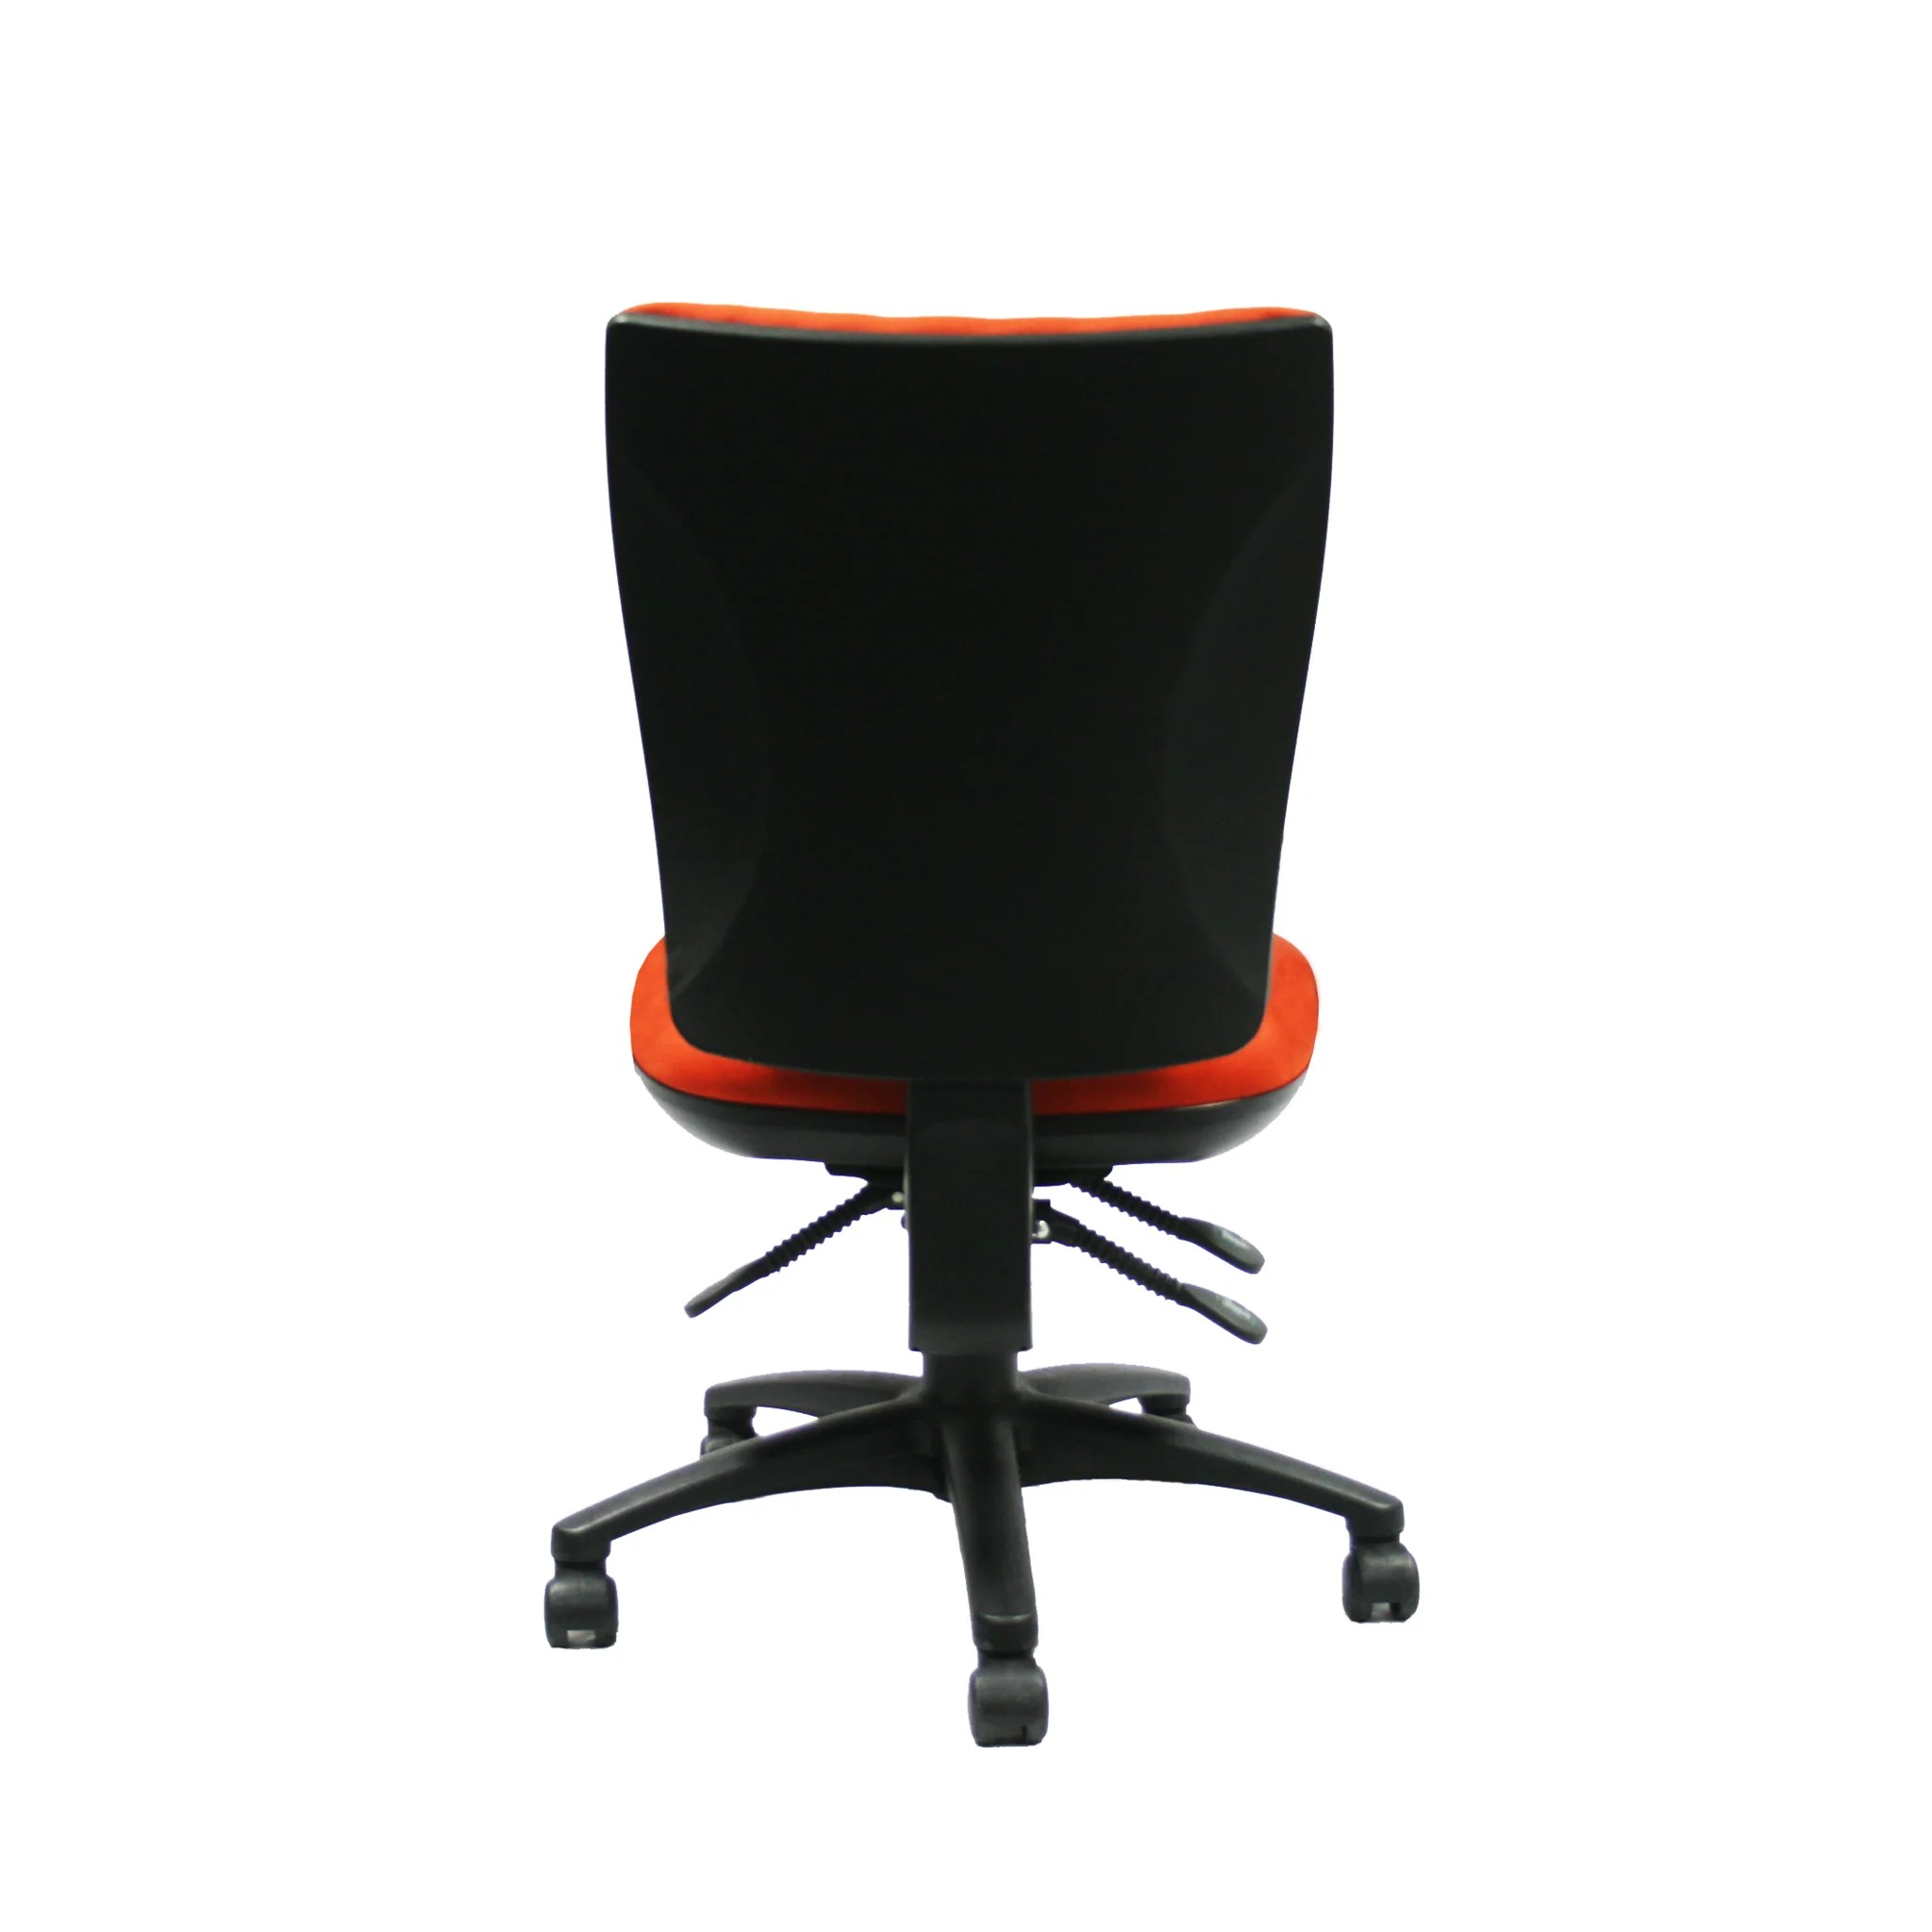 Orange Office Chairs Axiom Ergonomic Office Chair